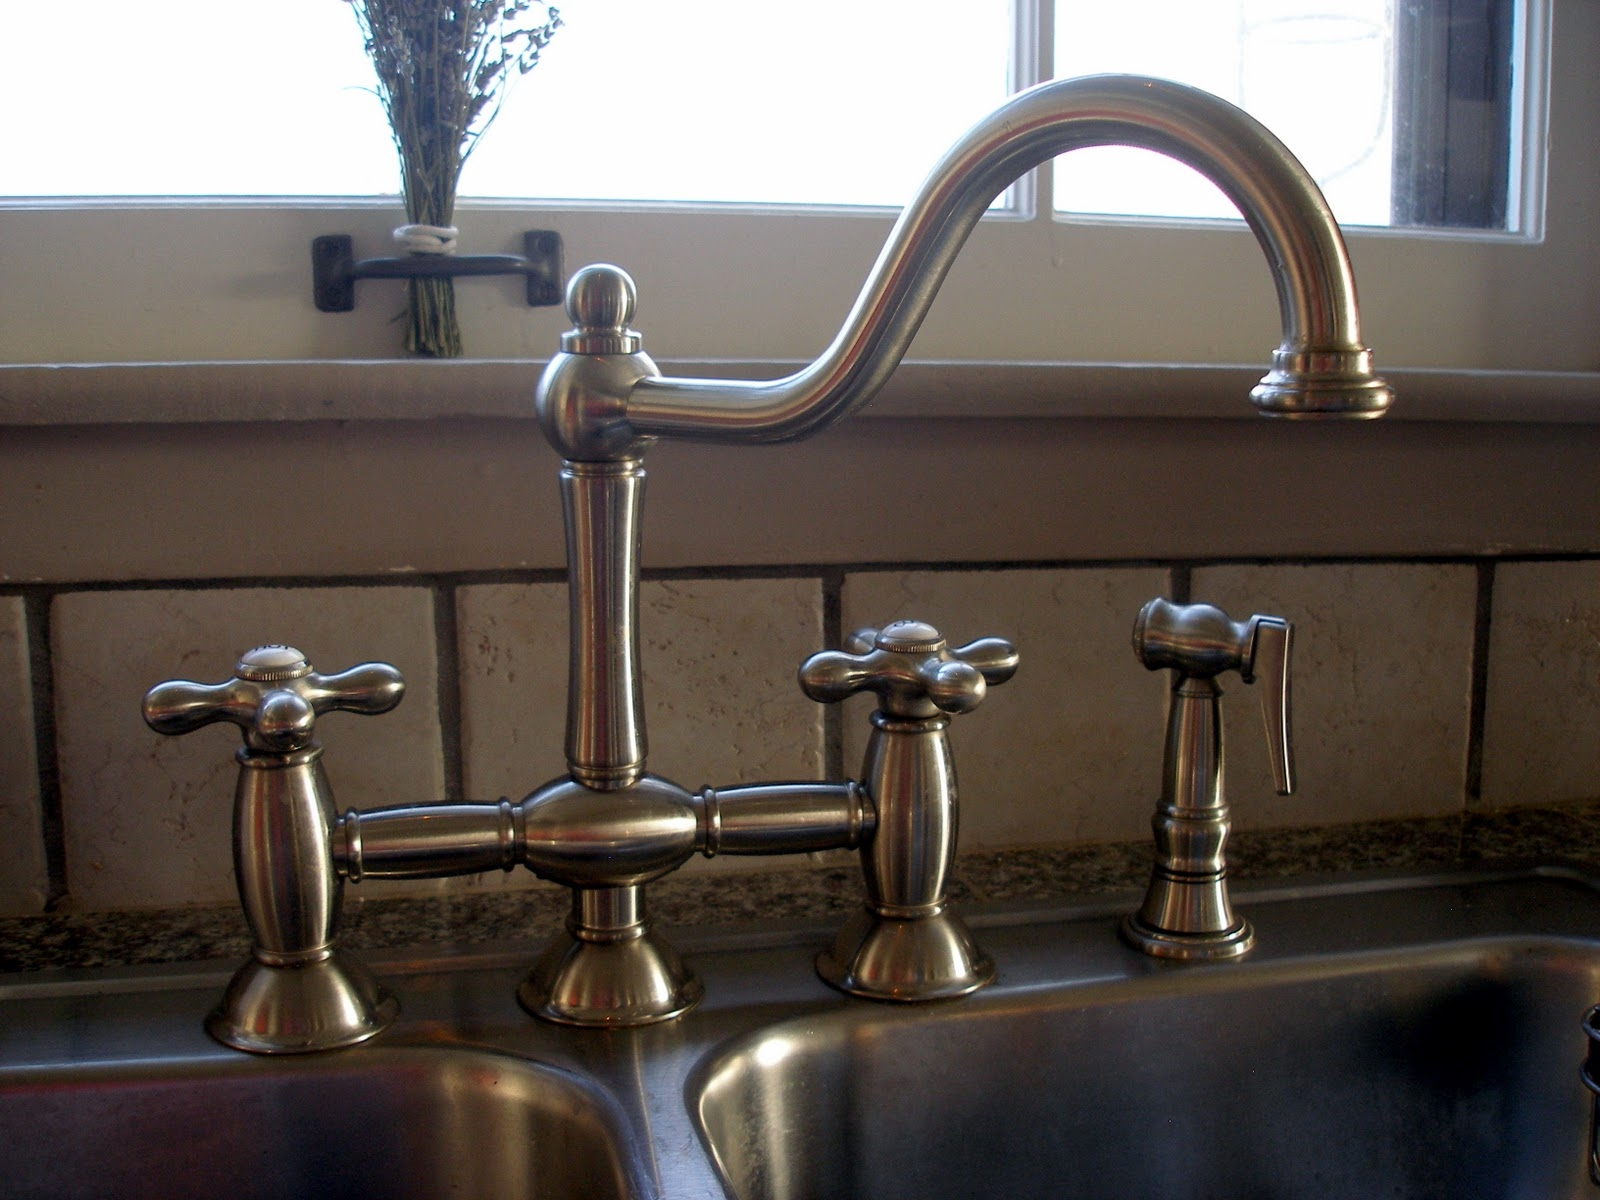 Ideas, old fashioned kitchen sink faucets old fashioned kitchen sink faucets retro kitchen sink home design ideas 1600 x 1200  .